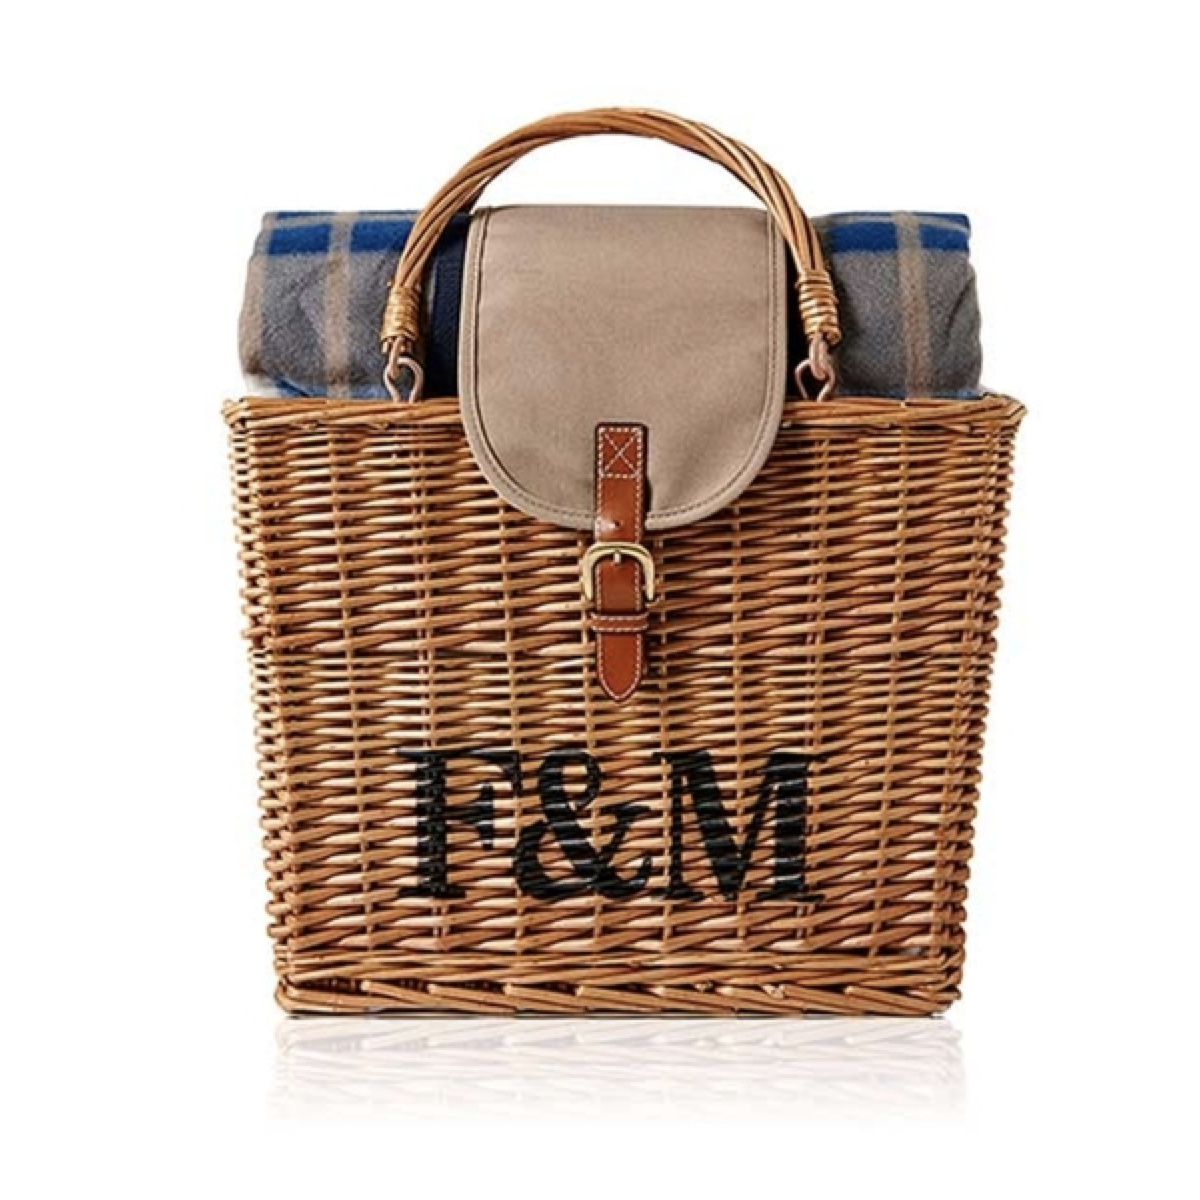 Fortnum's Wicker Hamper with Picnic Rug